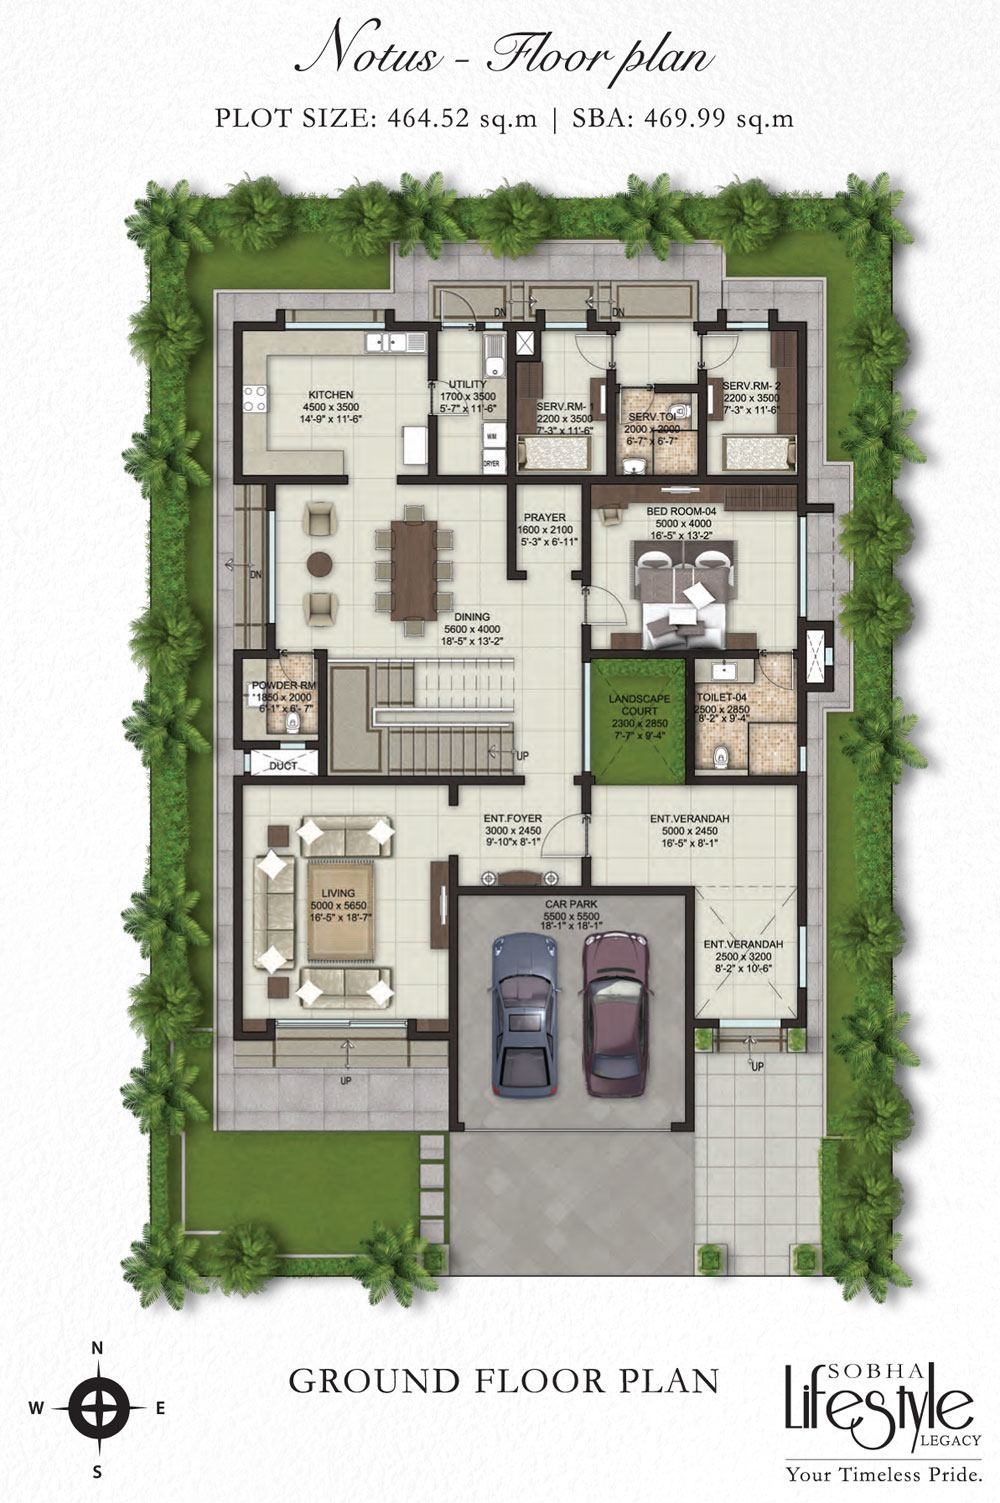 Sobha lifestyle legacy 4 bedroom villas bangalore for Villa house plans